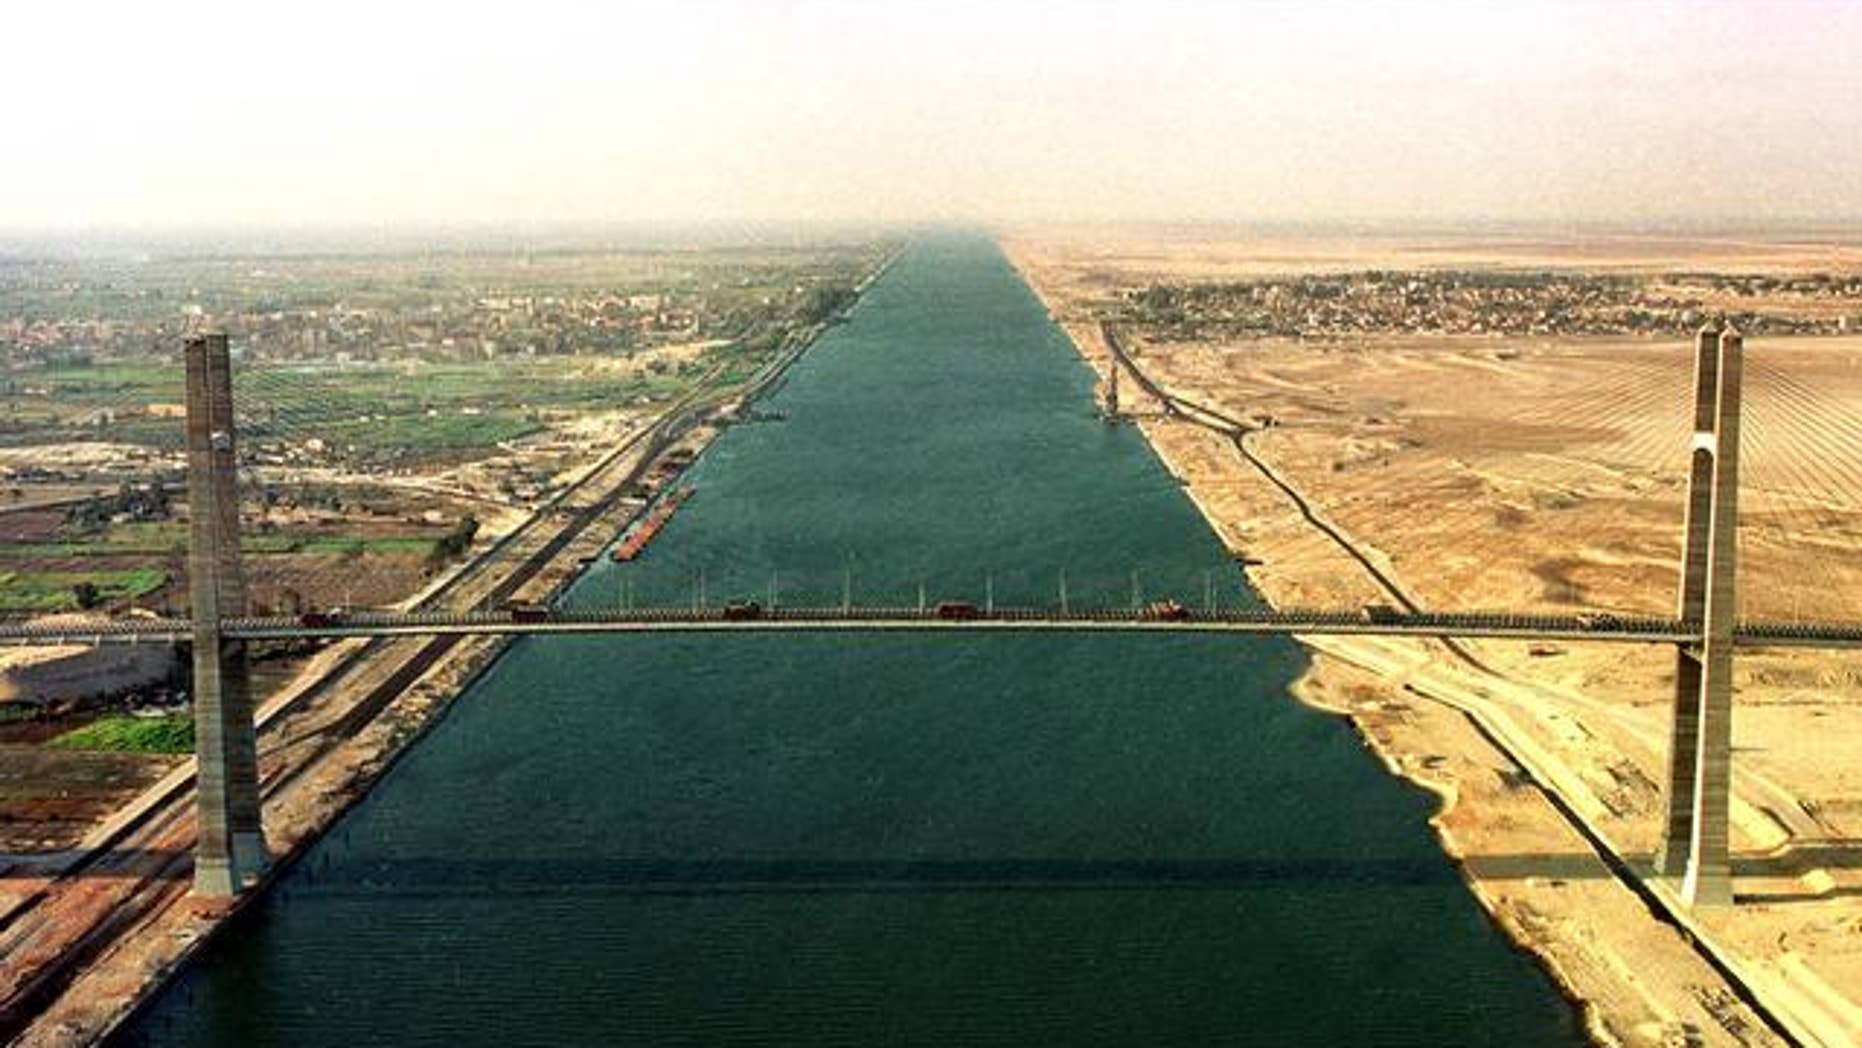 A 2001 file photo of the Suez Canal. Recent anti-presidential protests in Egypt have some concerned over whether or not ship traffic could be disrupted.